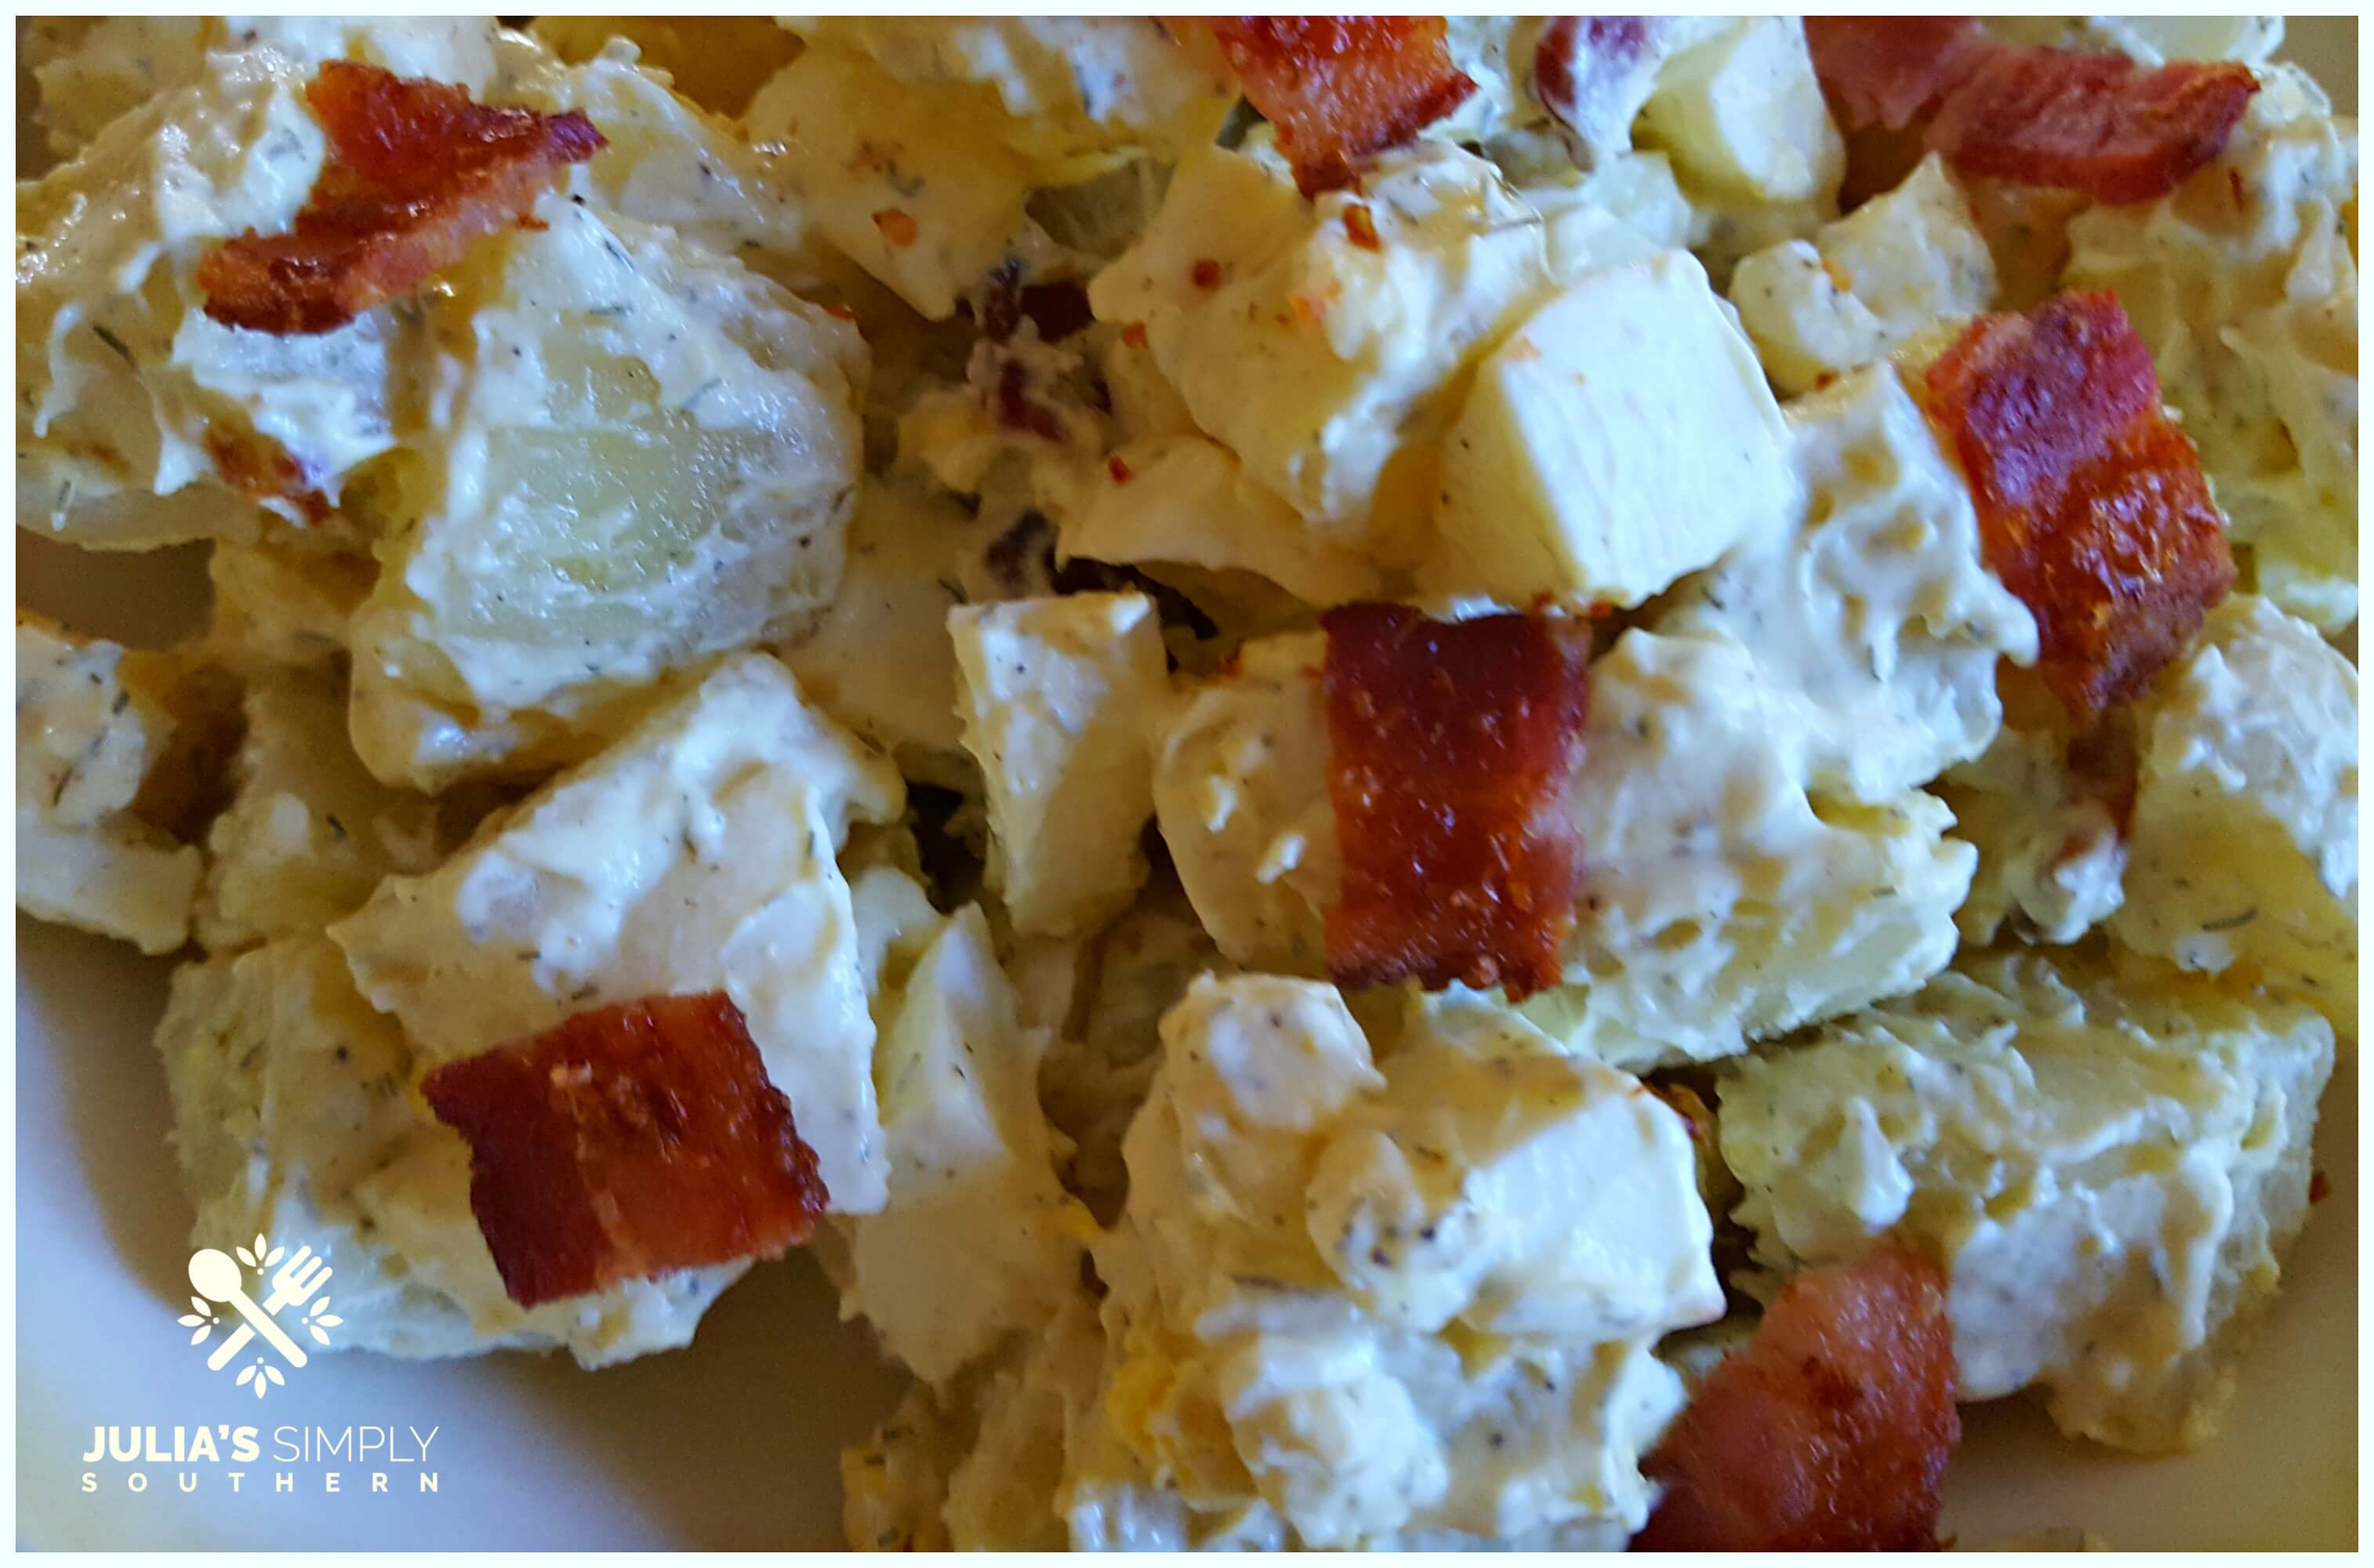 Southern Mustard Potato salad with dill and bacon